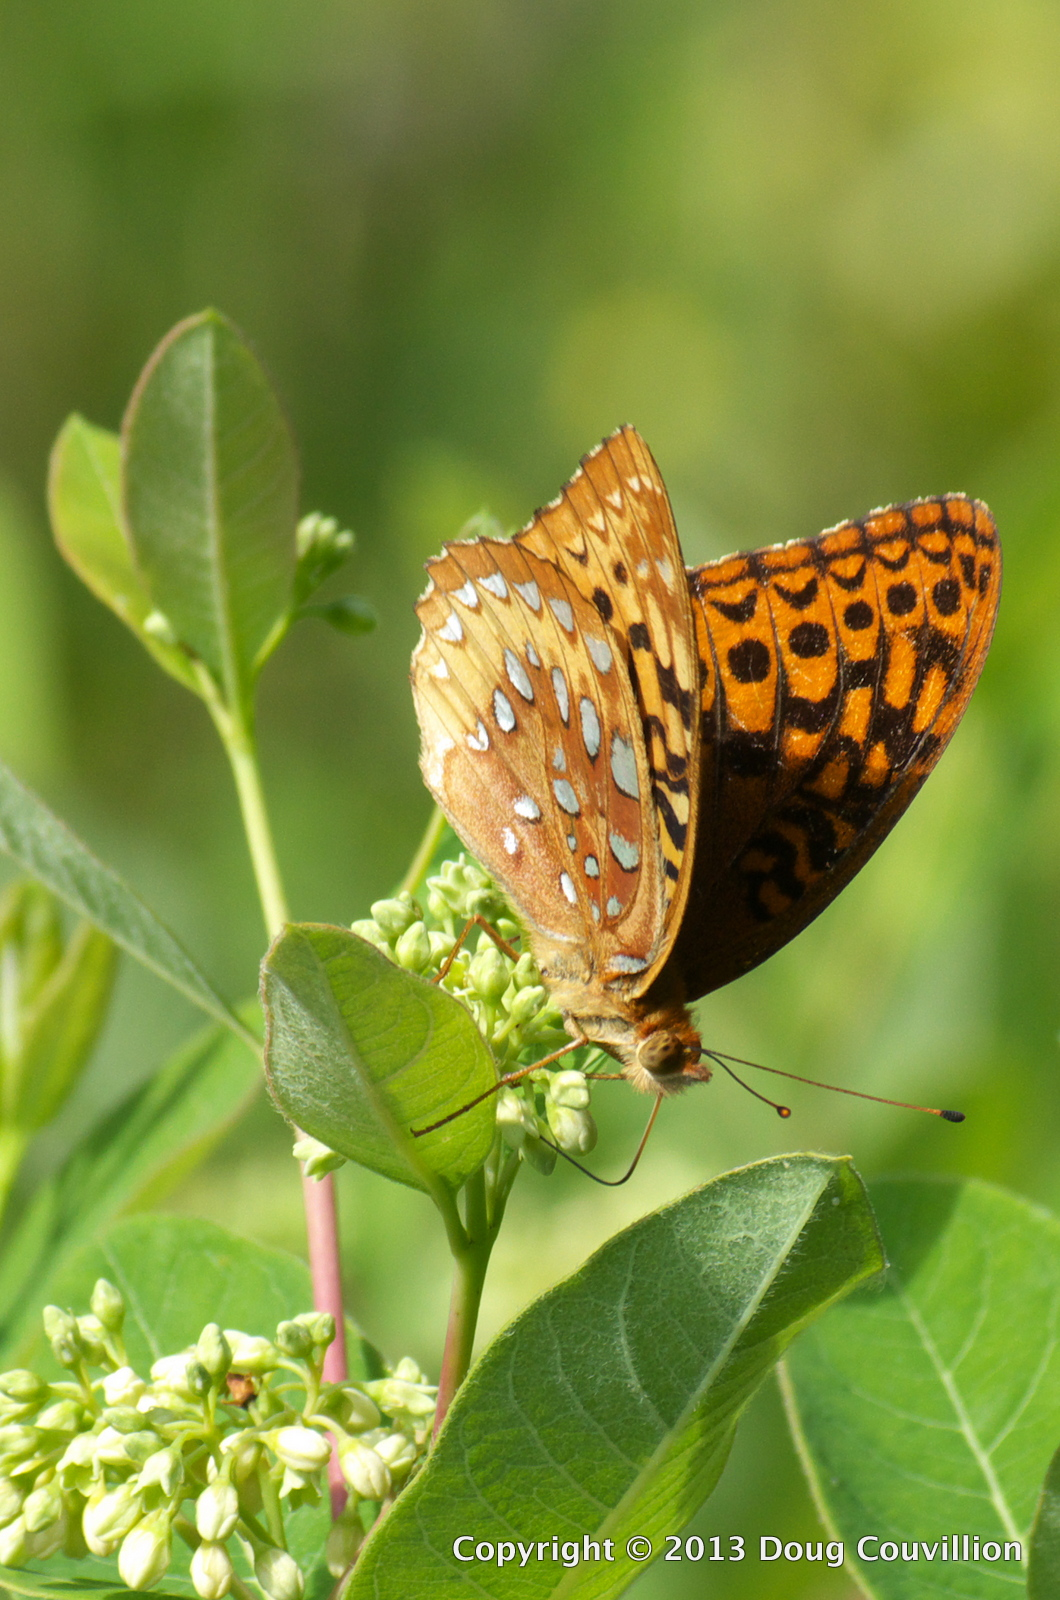 photograph of a great spangled fritillary butterfly drinking nectar from a wild flower